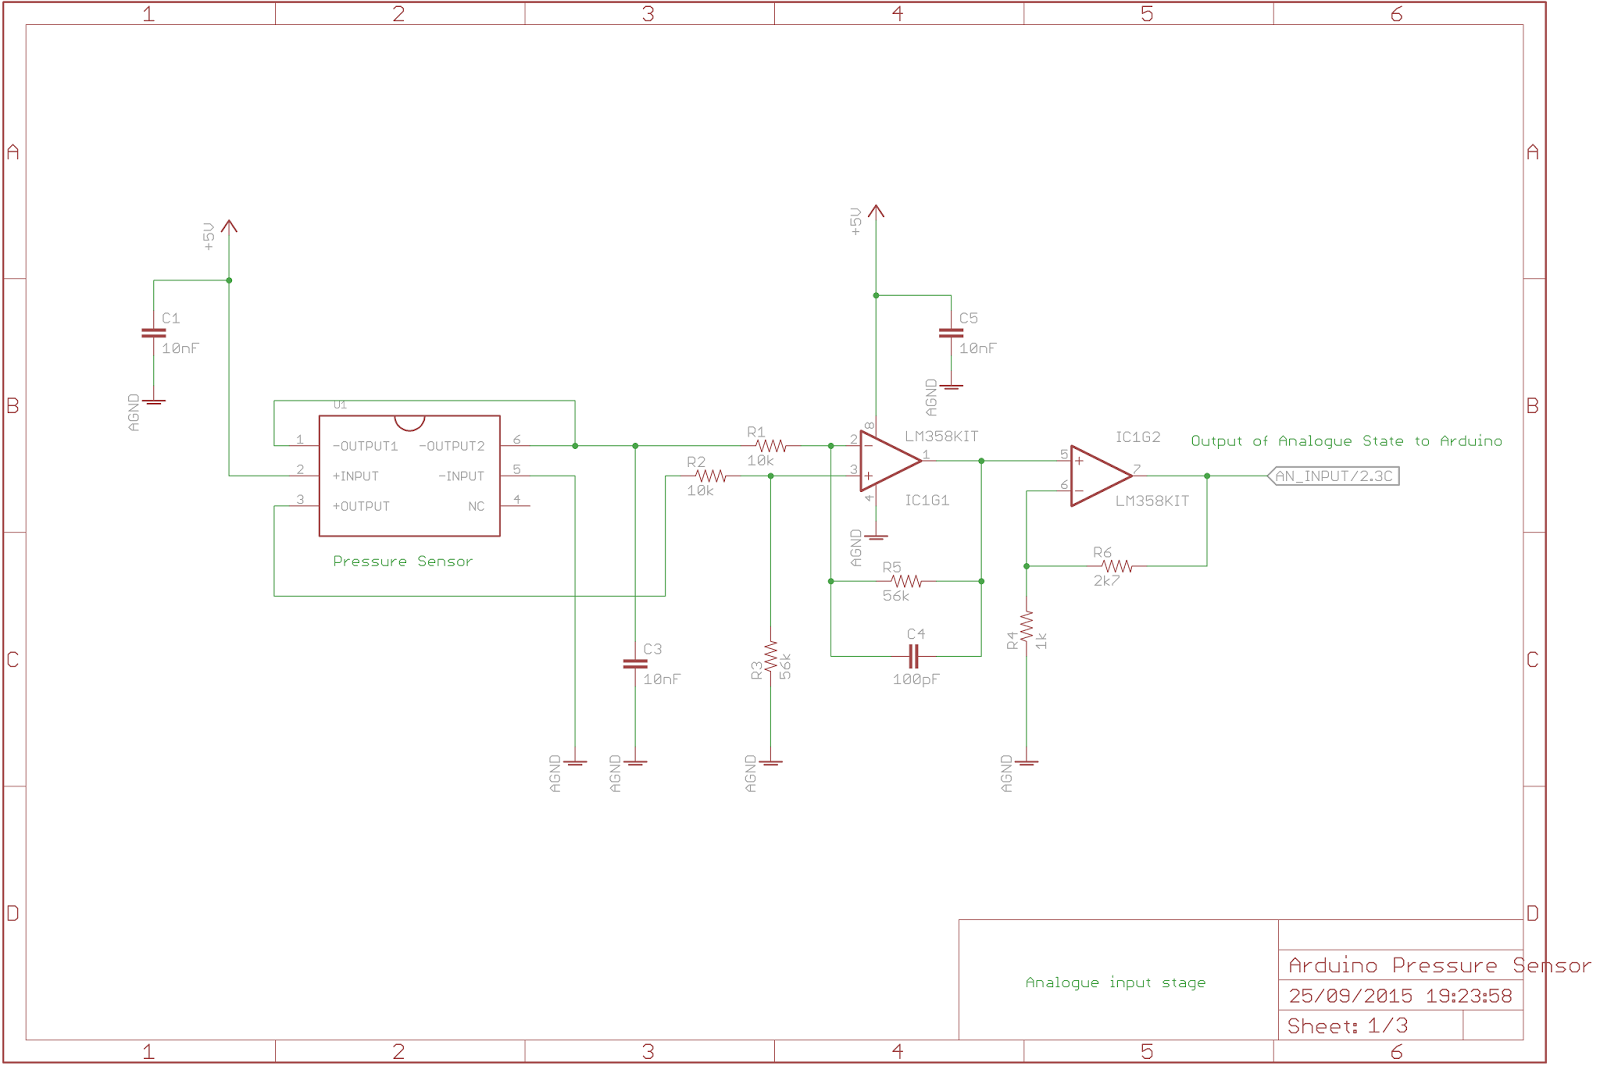 small resolution of i haven t discussed rs485 before but it is a fairly common serial communications protocol here is the full schematic diagram